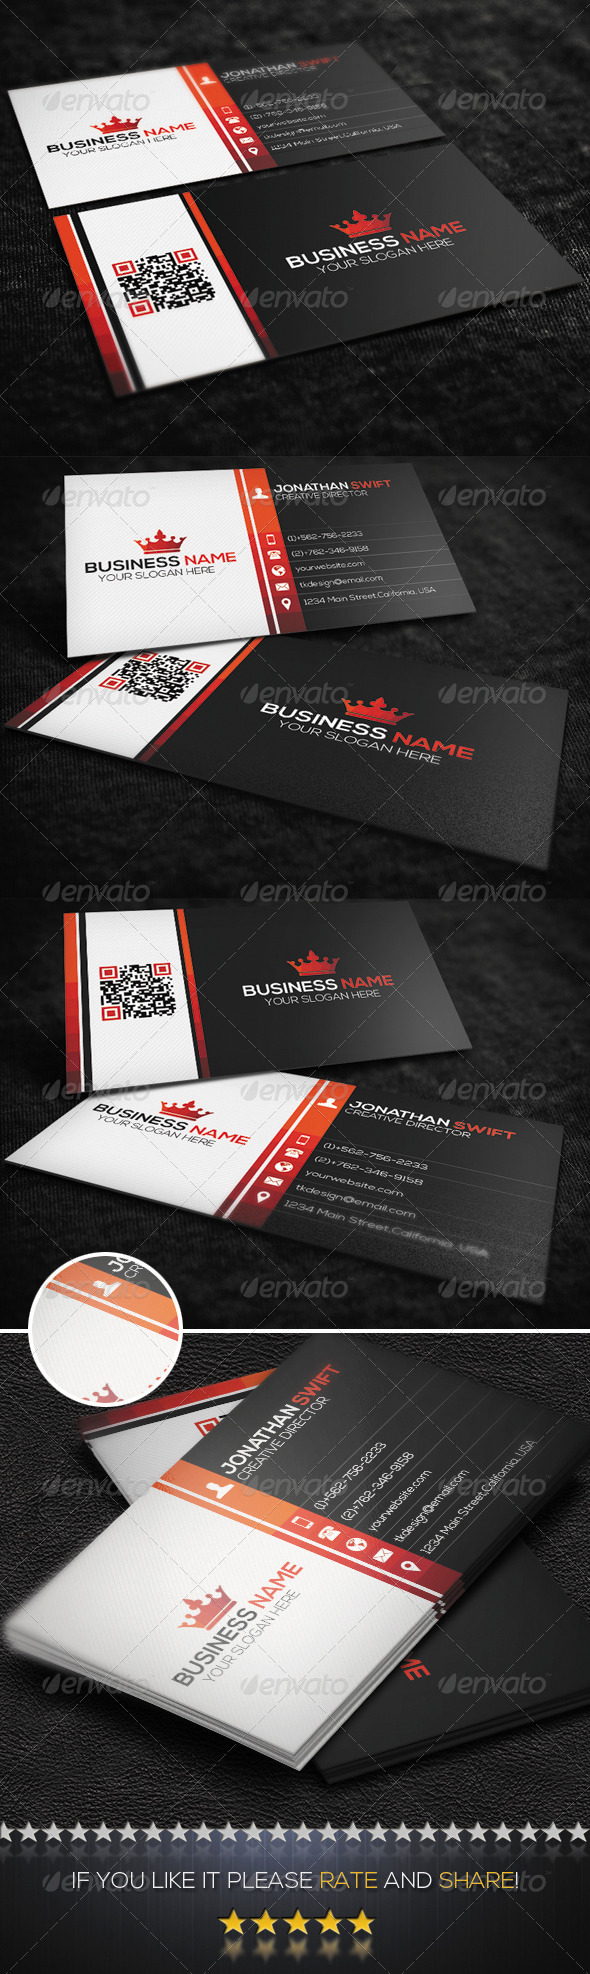 GraphicRiver Corporate Business Card 8731826